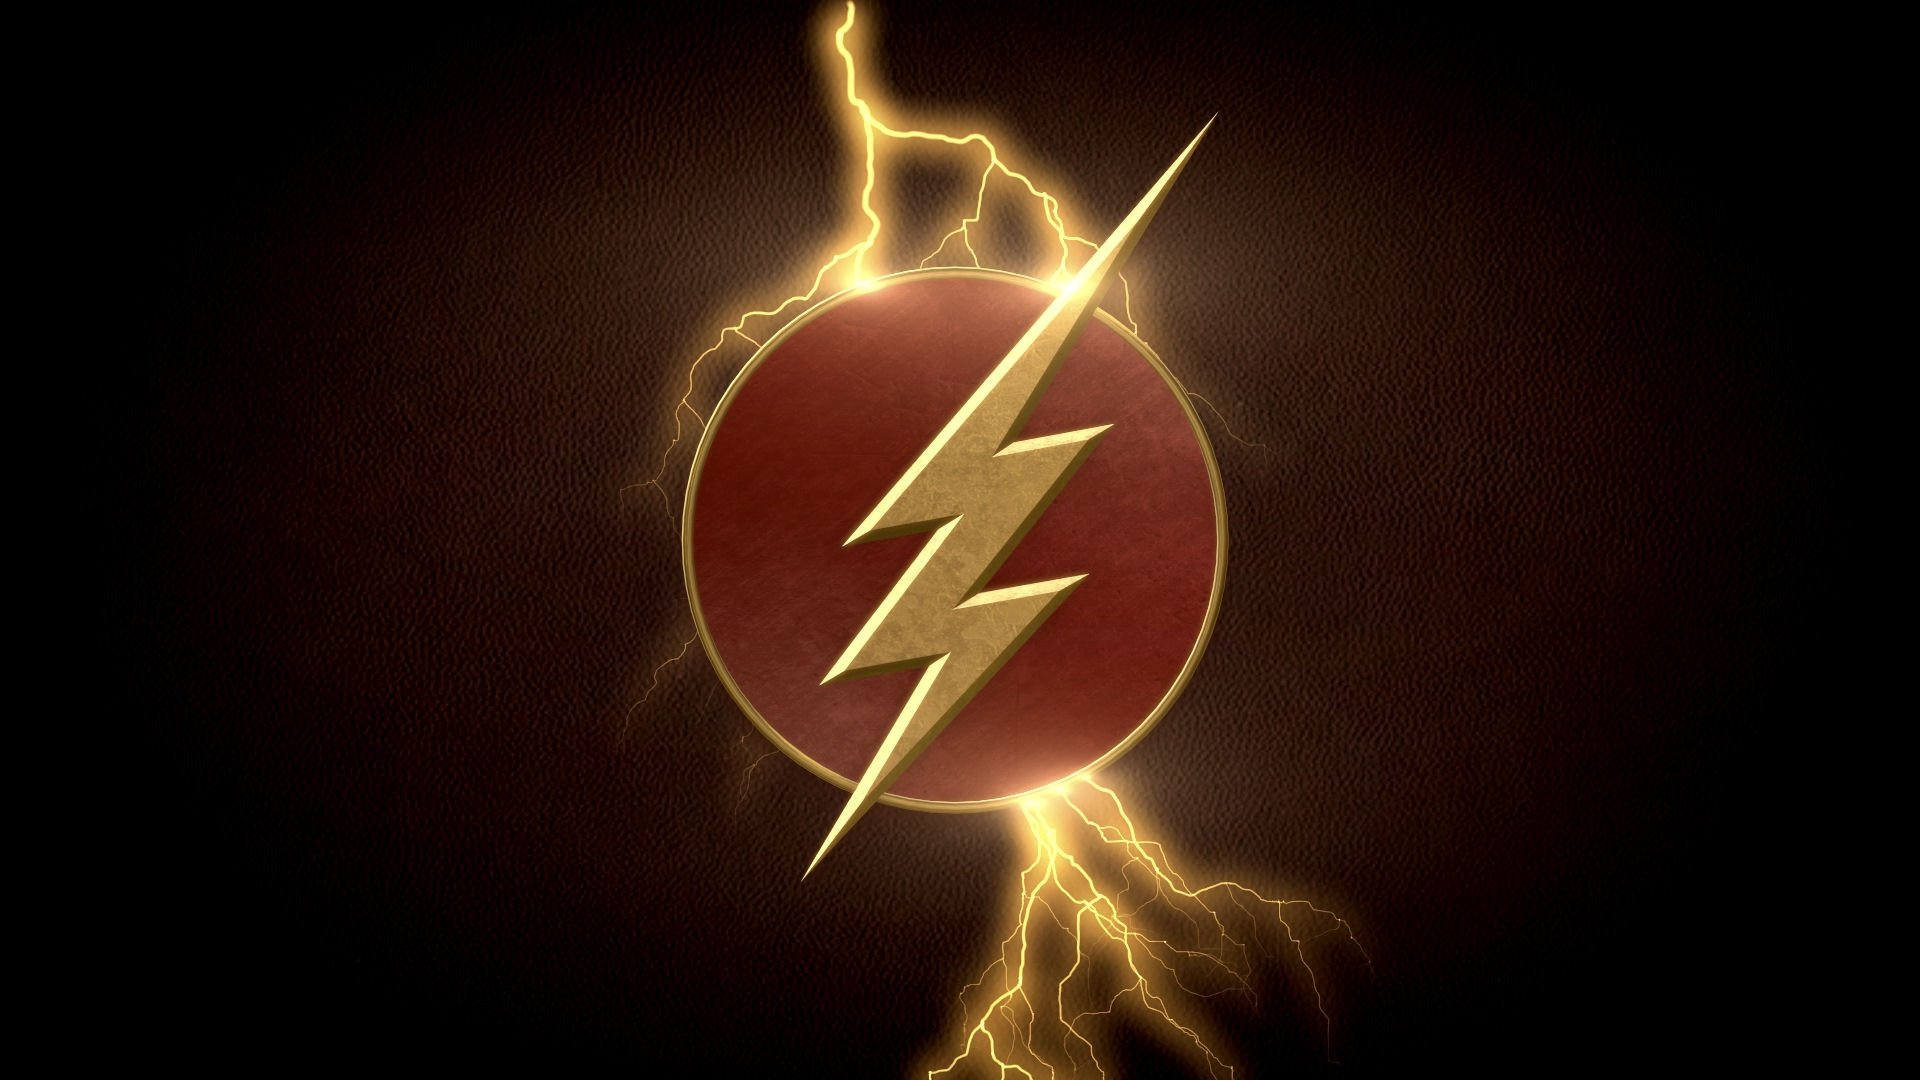 The Flash Wallp 1920x1080